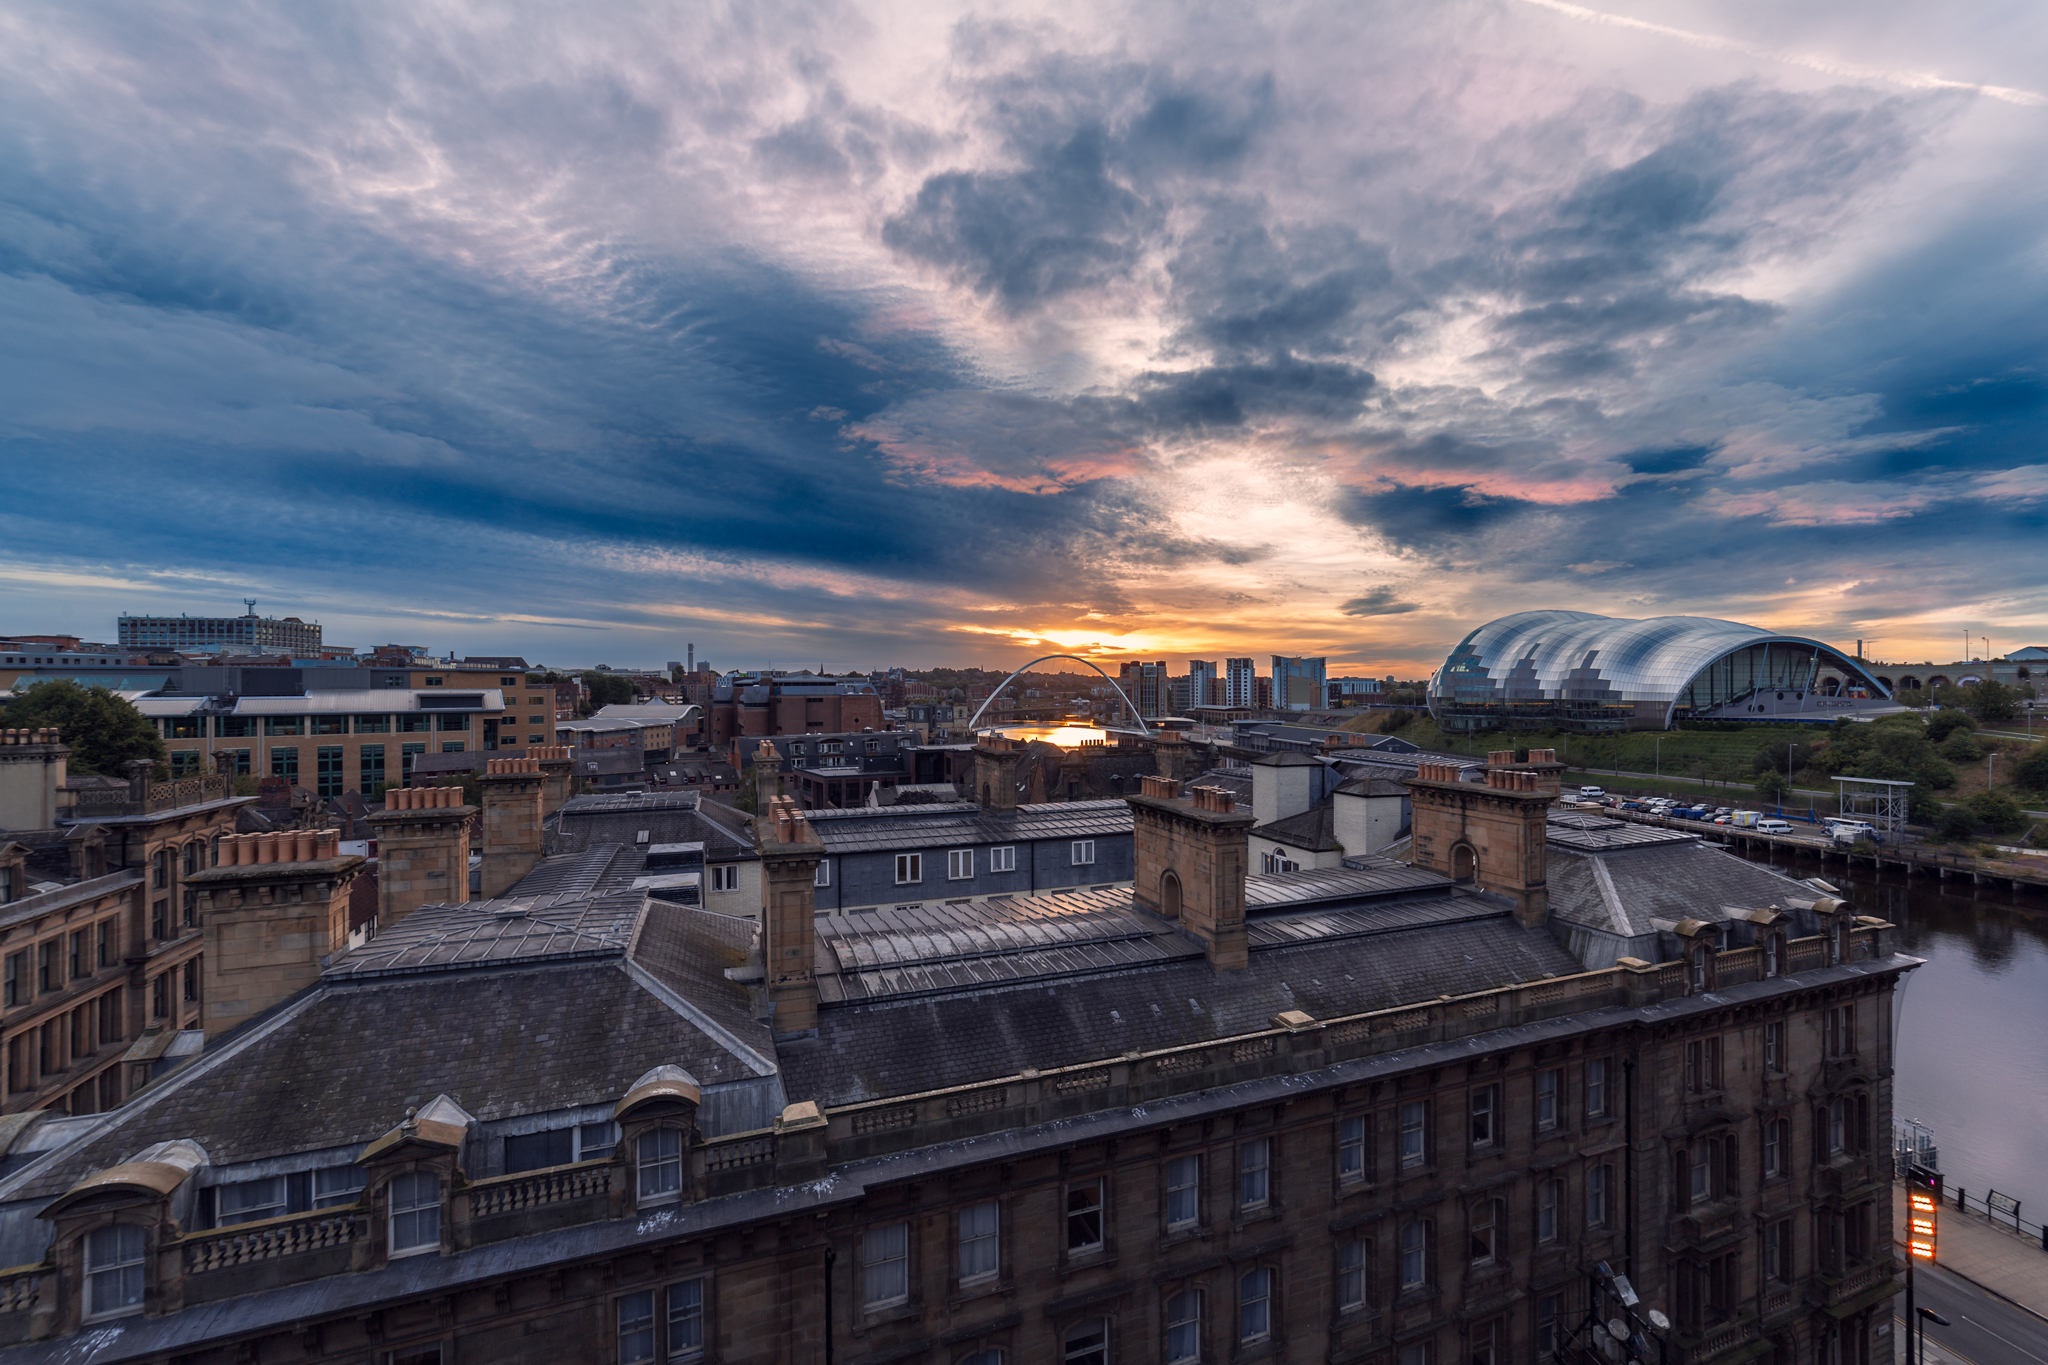 Over the Rooftops, Newcastle Quayside Photo: Lee Stoneman